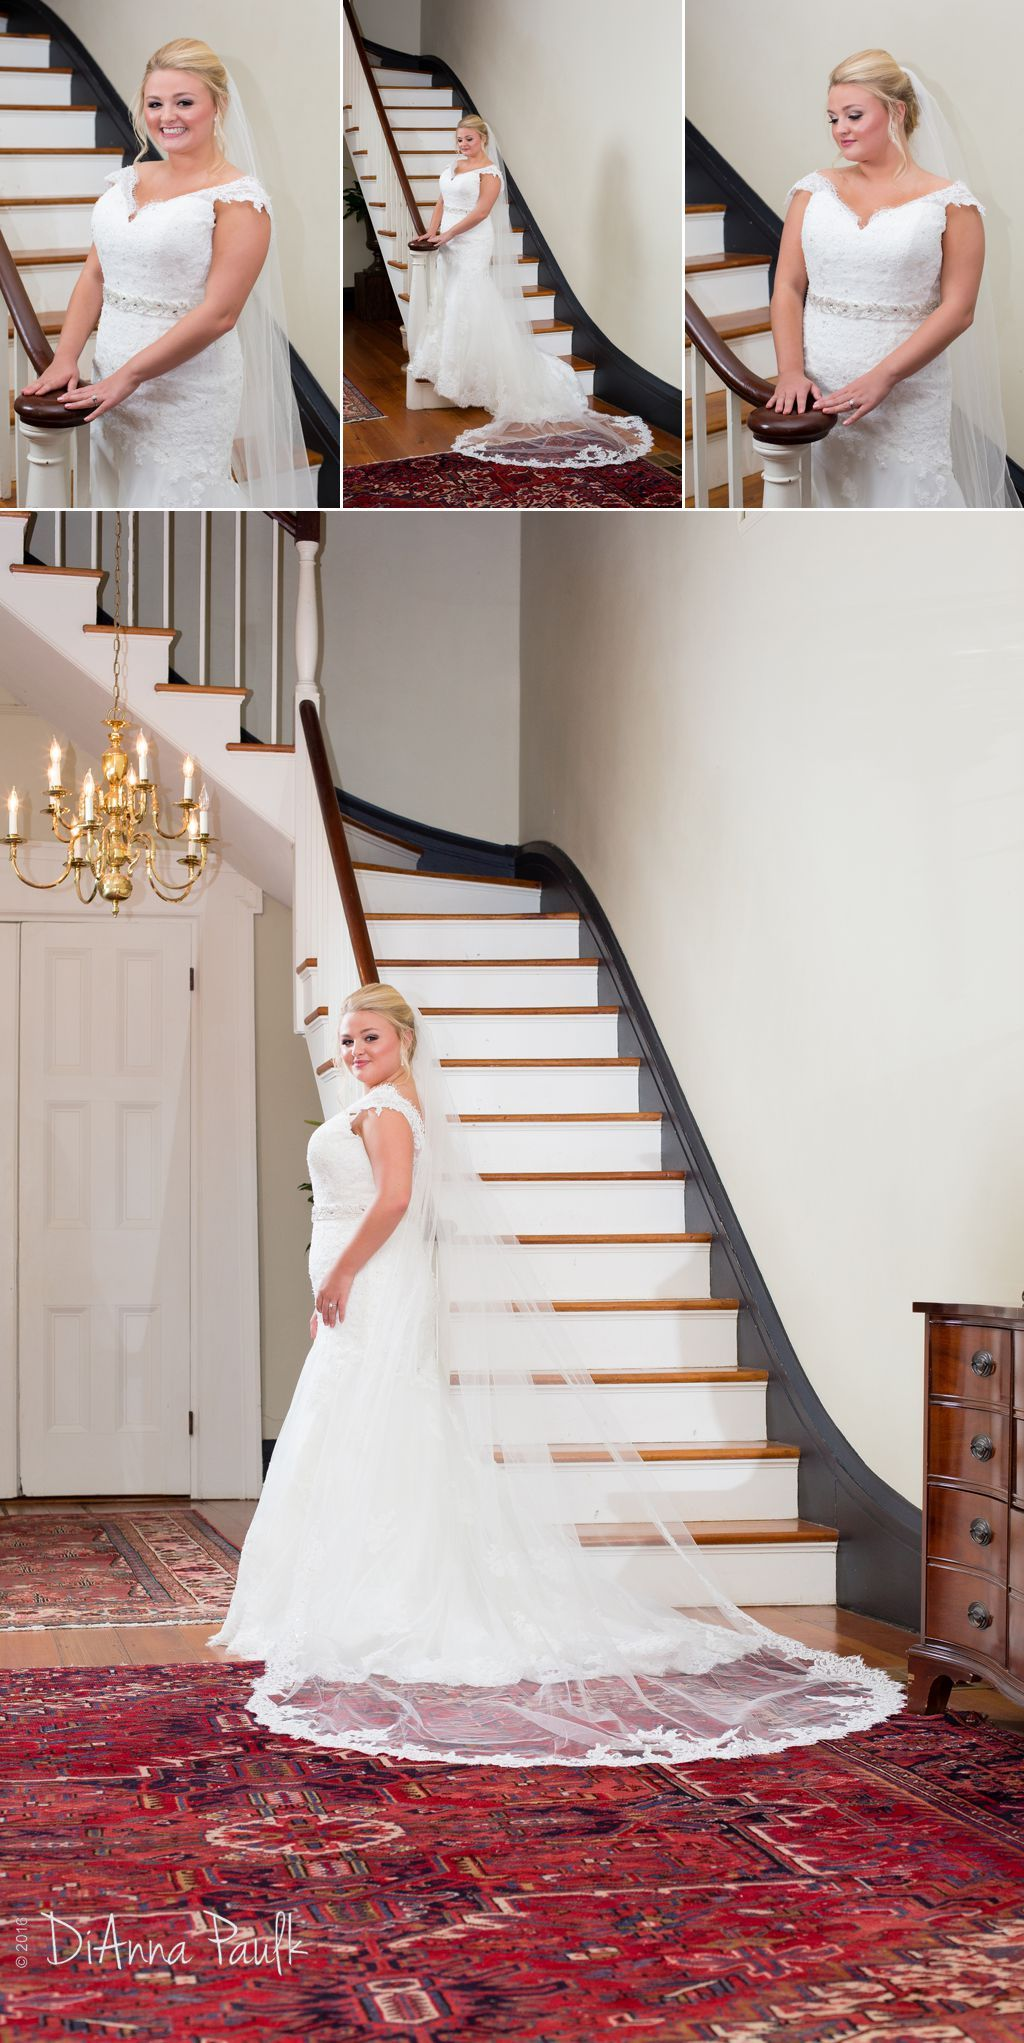 Bridal Portraits At The Elms Of Coosada Photography By Dianna Paulk A Certified Professional